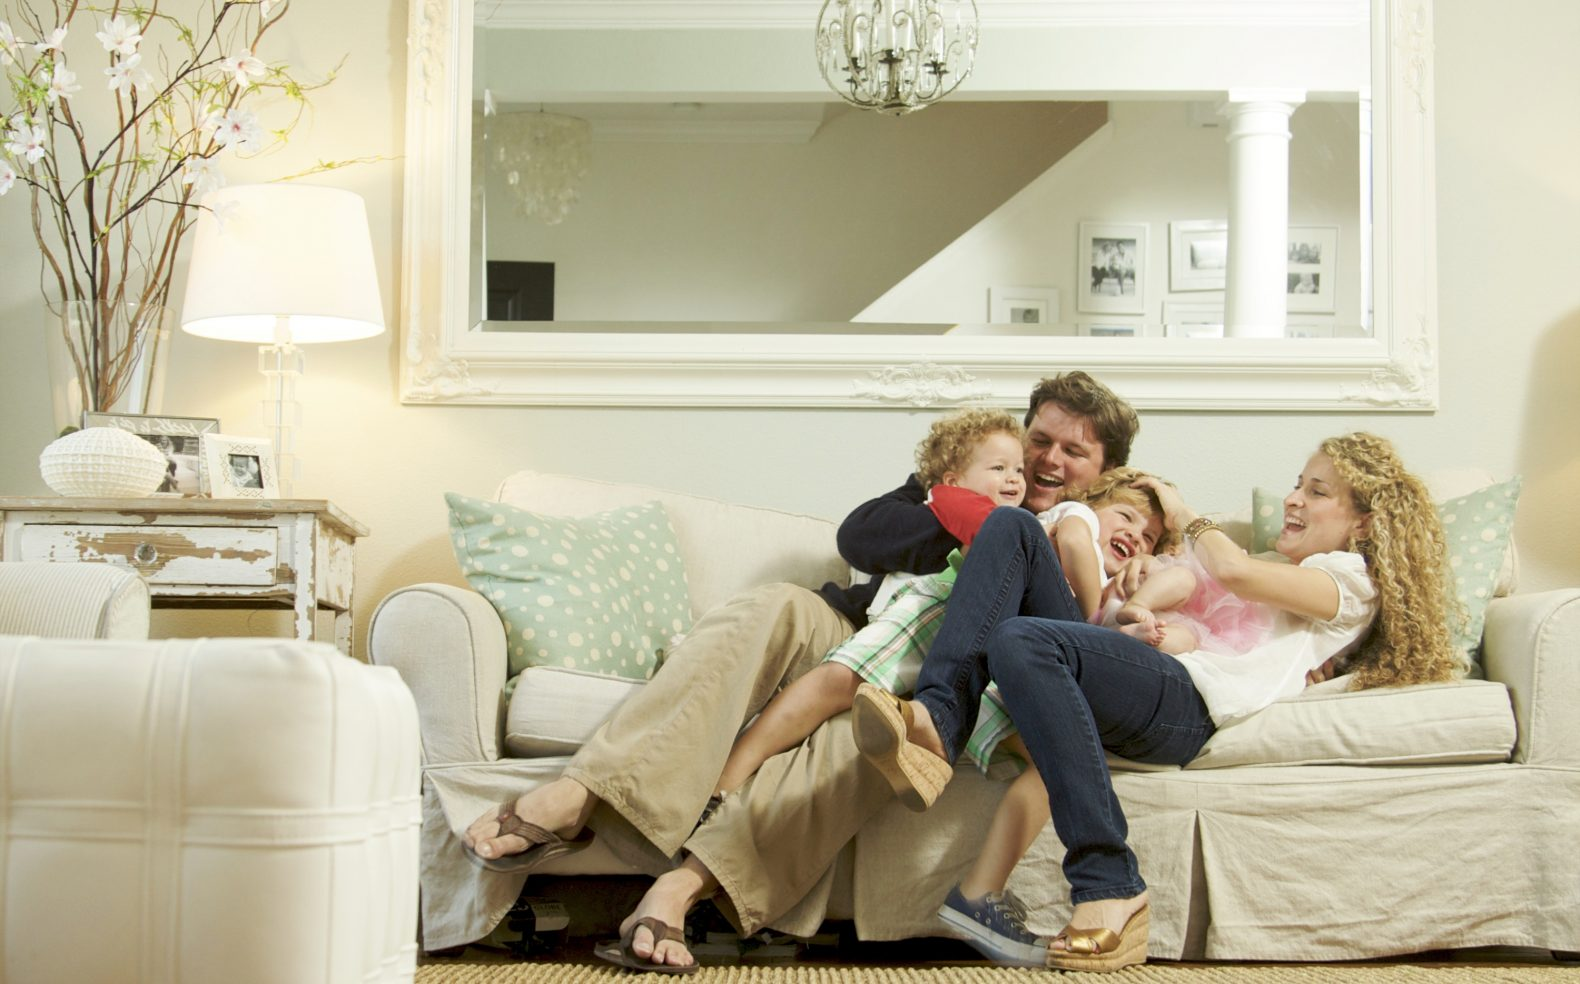 Professional photograph of young family snuggling and laughing on a living room couch